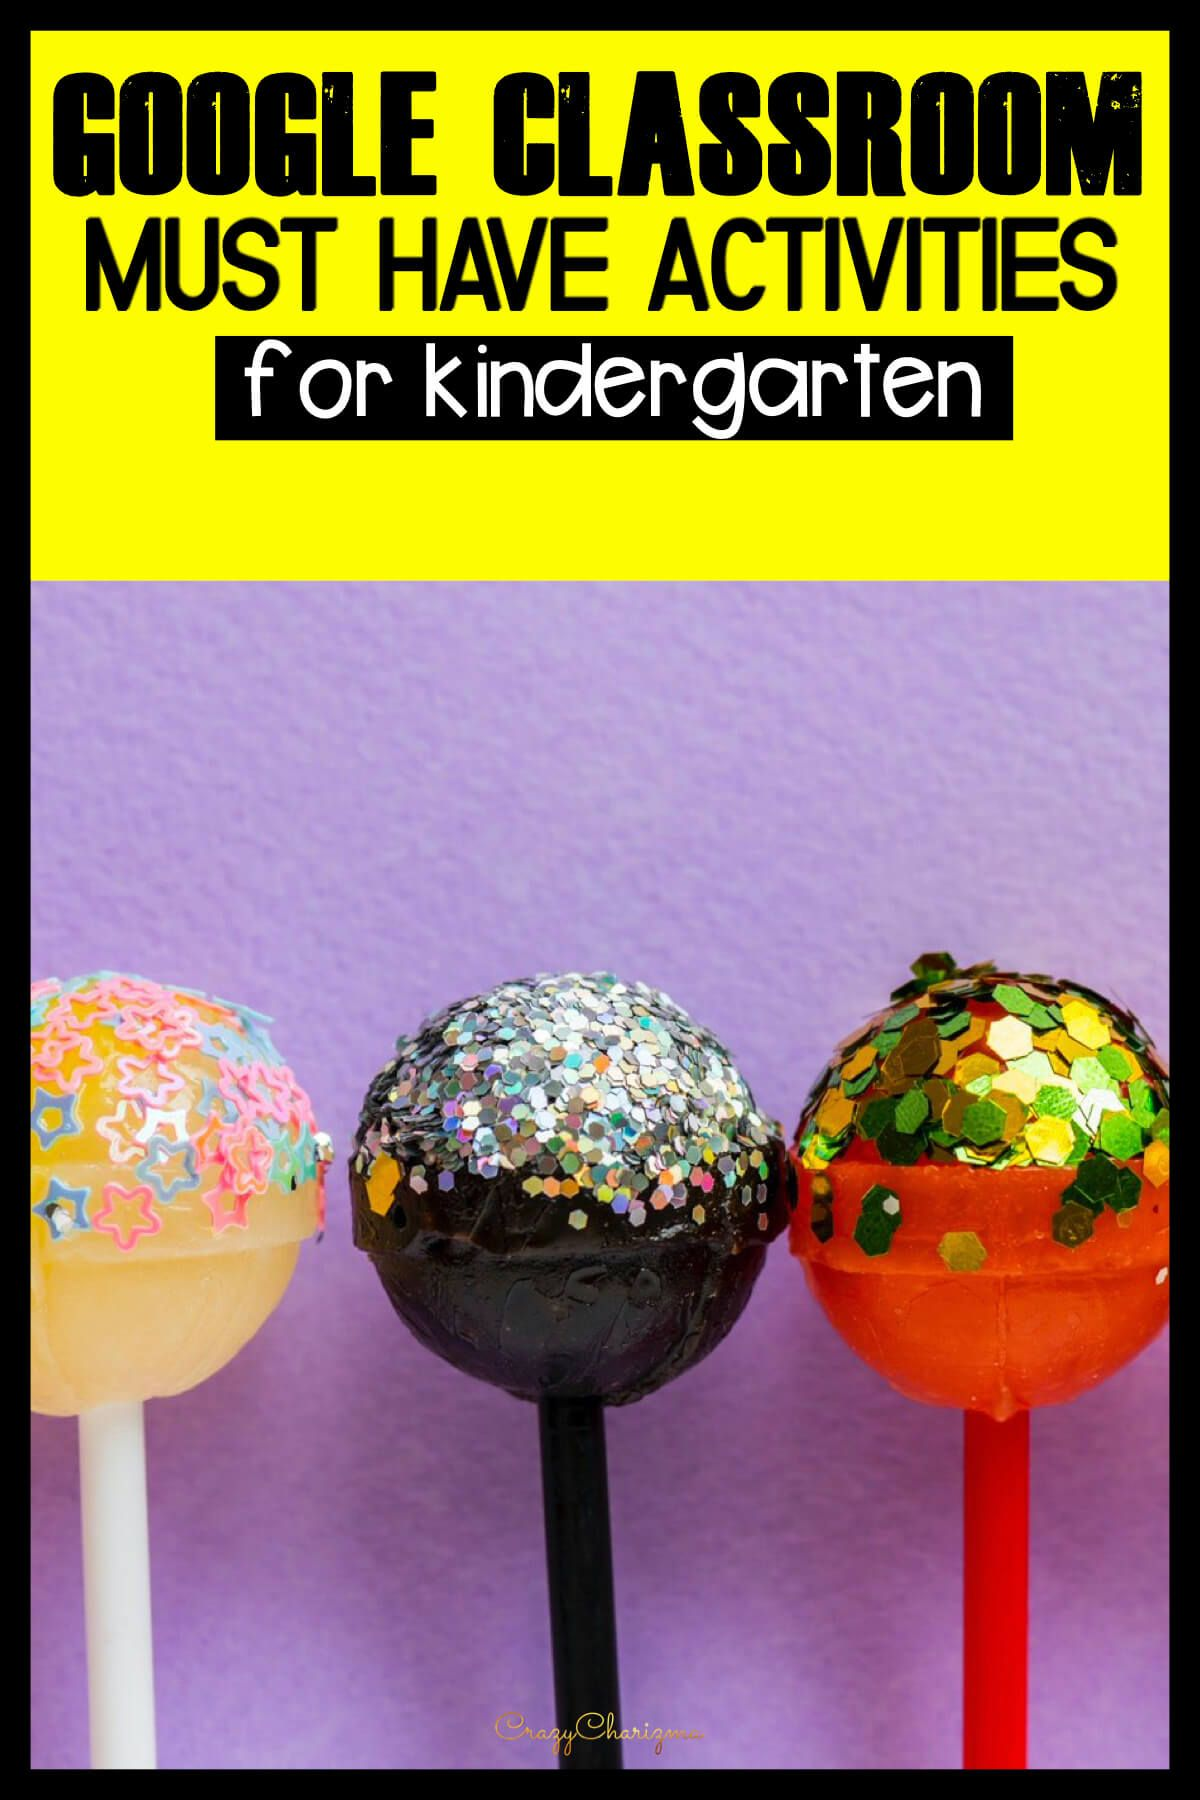 Google Classroom Activities for Kindergarten